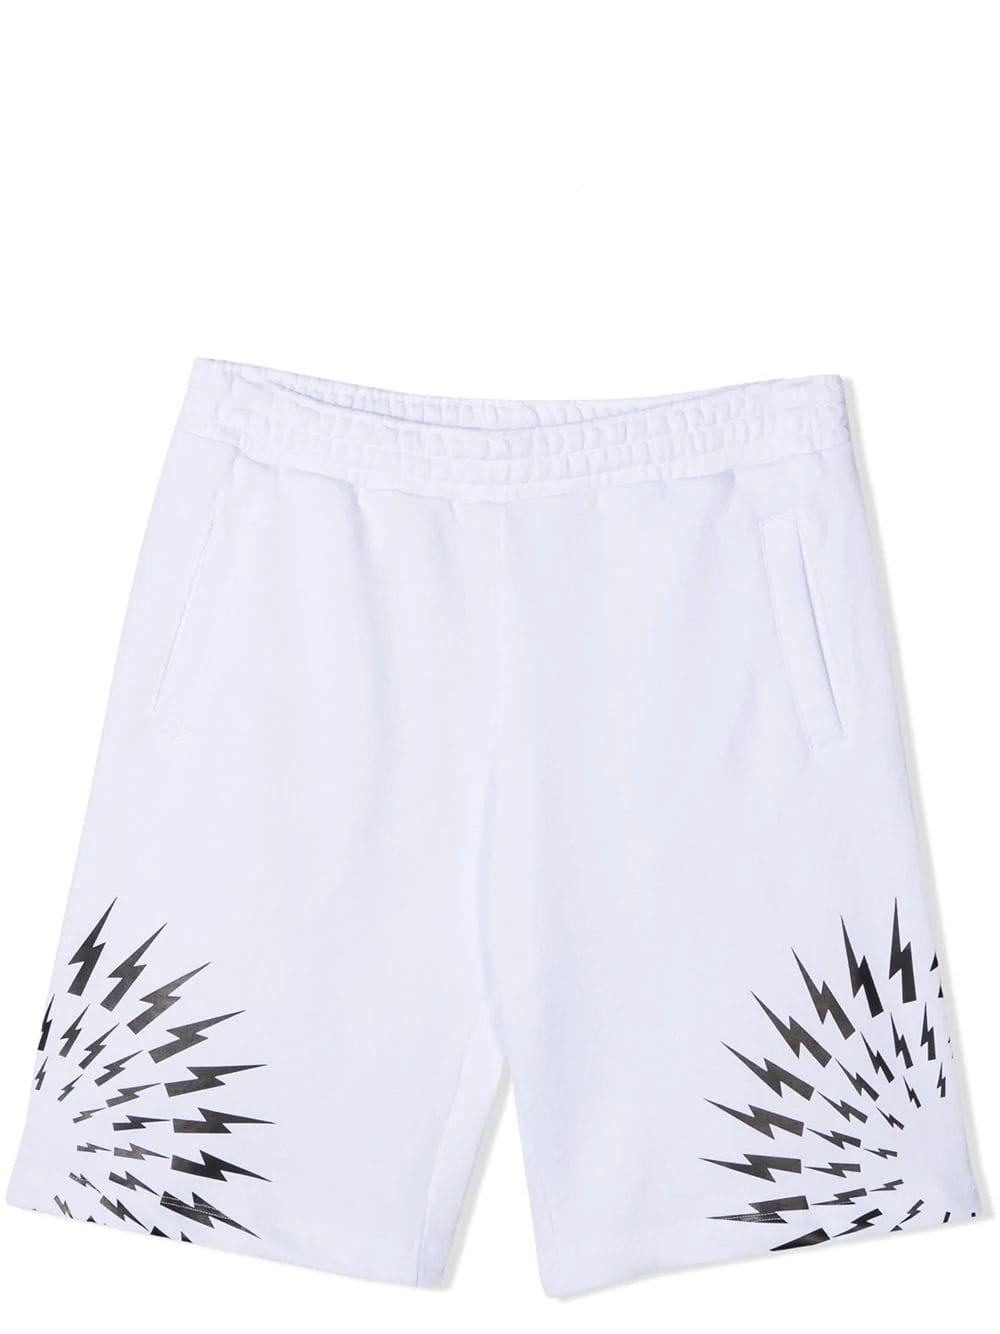 Neil Barrett Kids' Cotton Shorts In White